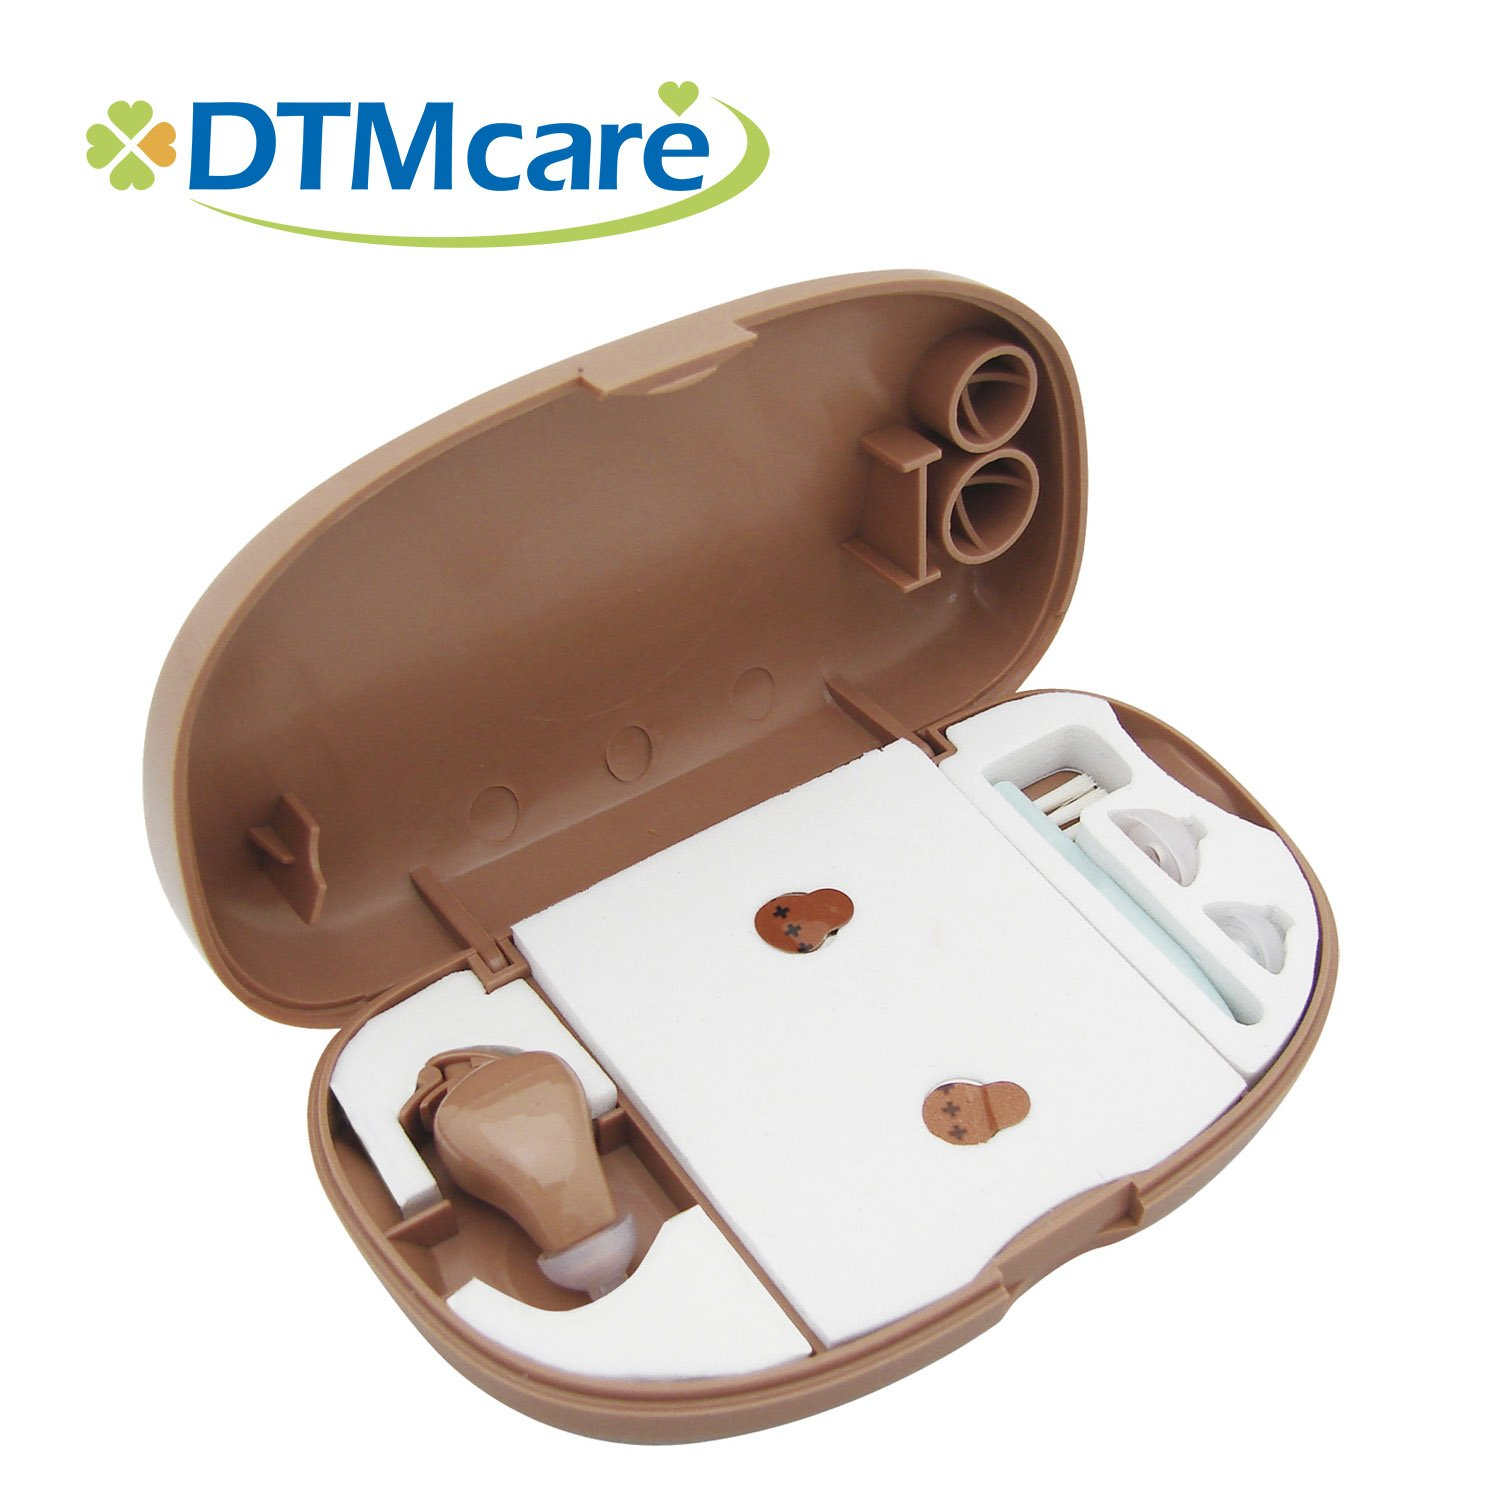 Canal Hearing Amplifier Battery Operated312 Pr41 Living Aids Amplifiers Accessories Button Cell Mini Size Fit Both Ears Fda Registered Ce Medical Approved Health